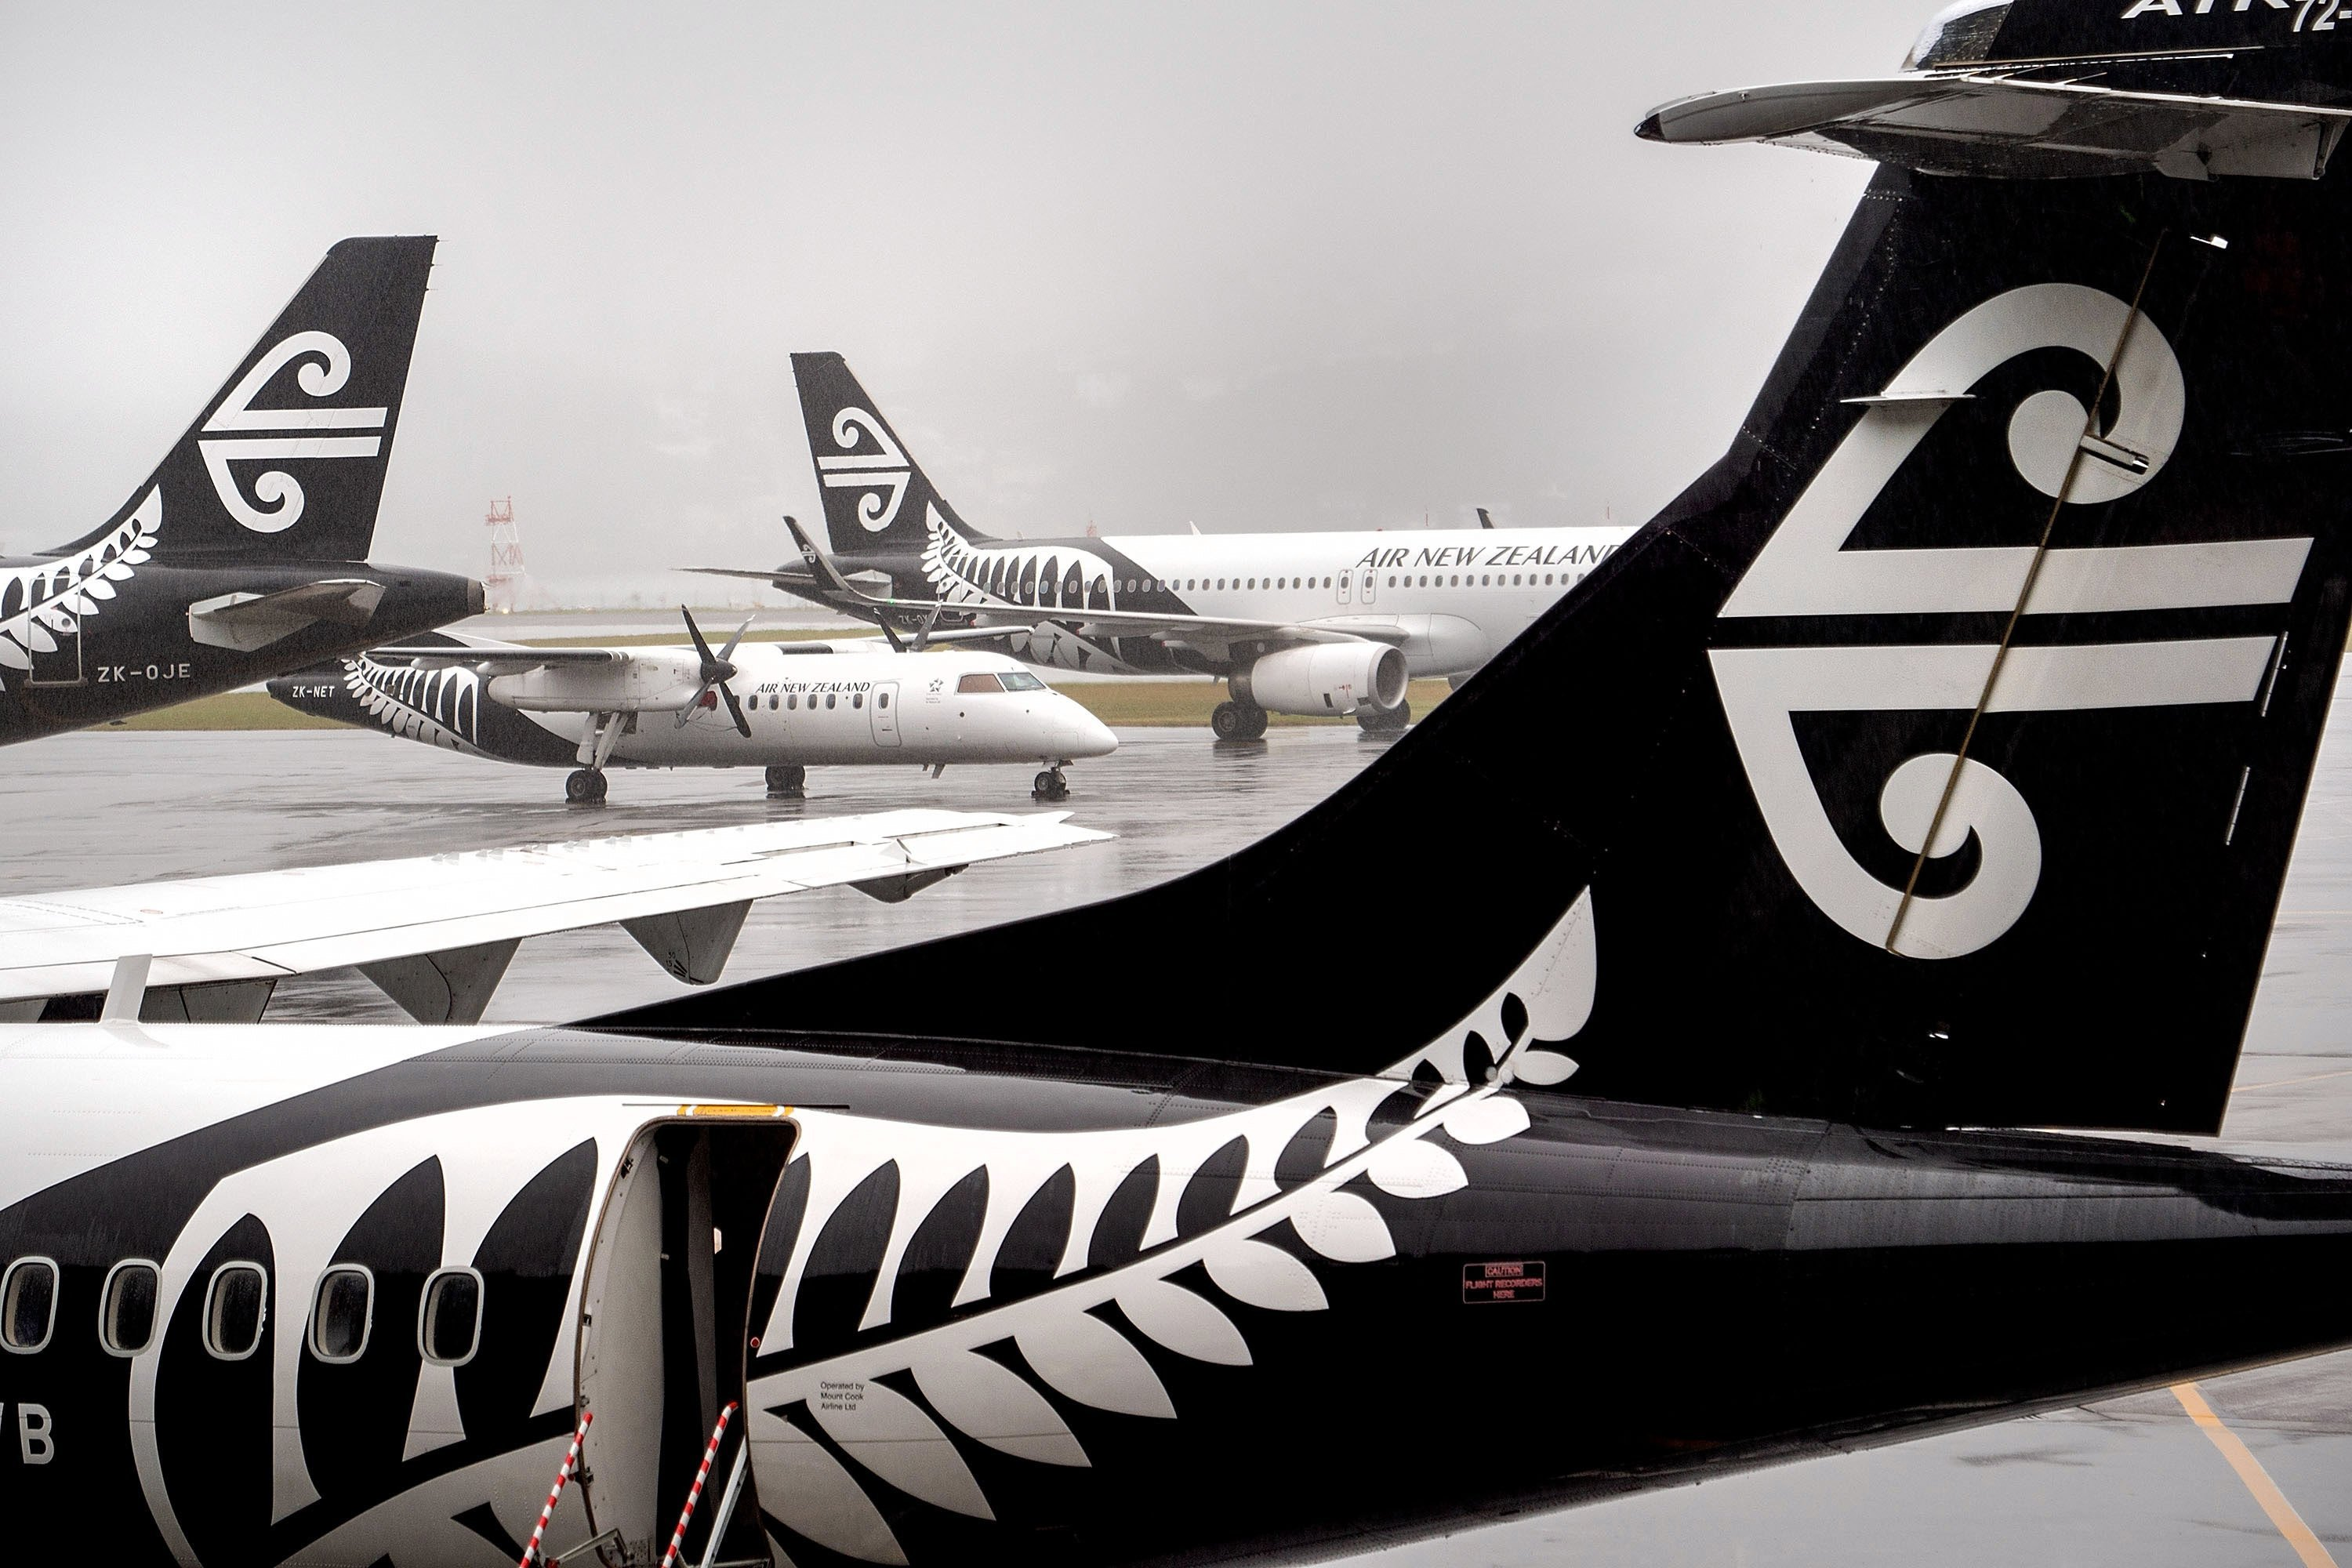 Since the late 1960s, Air New Zealand's koru-liveried aircraft have been a familiar sight around the world. Photo: New Zealand Herald